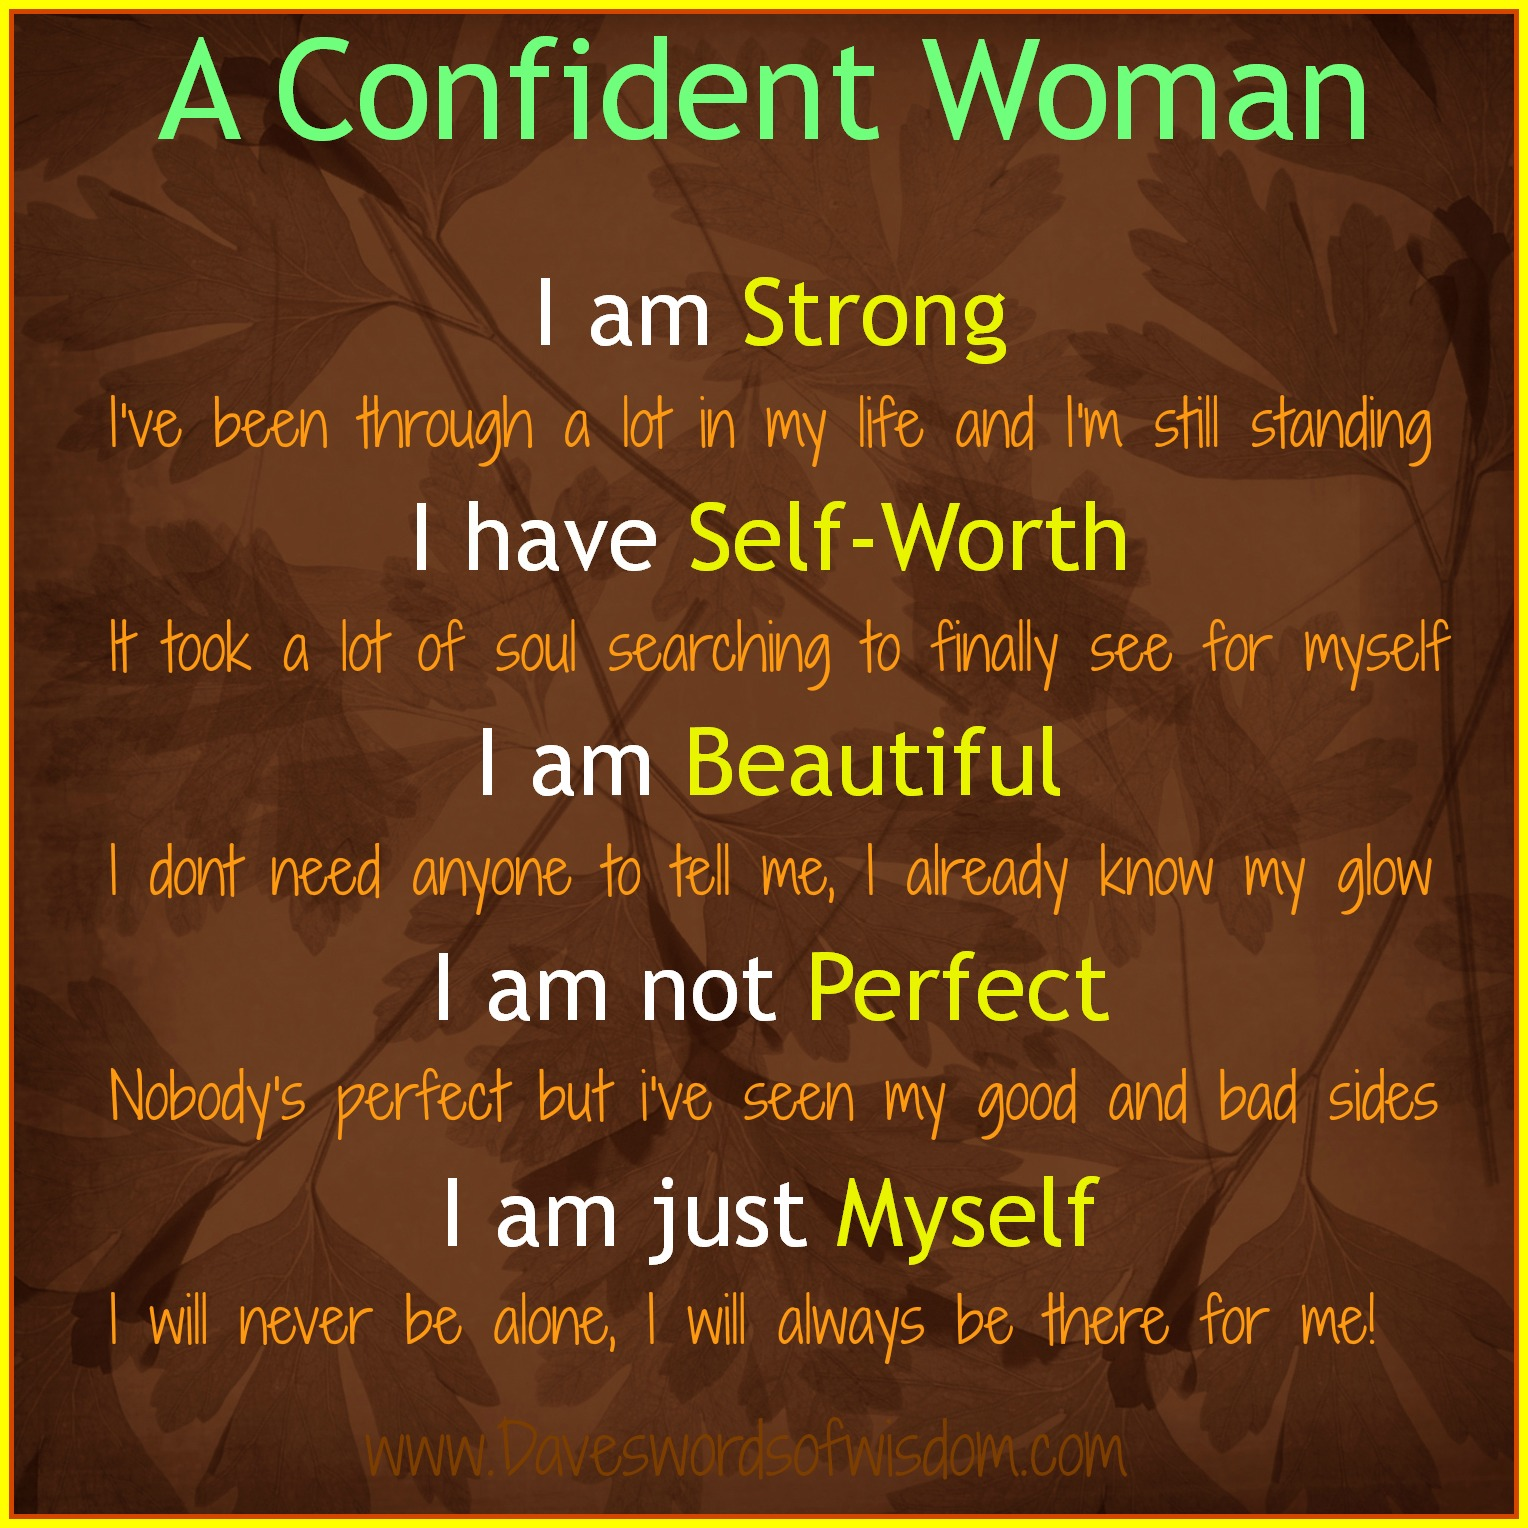 Daveswordsofwisdom.com: A Confident Woman Confidence Quotes For Women